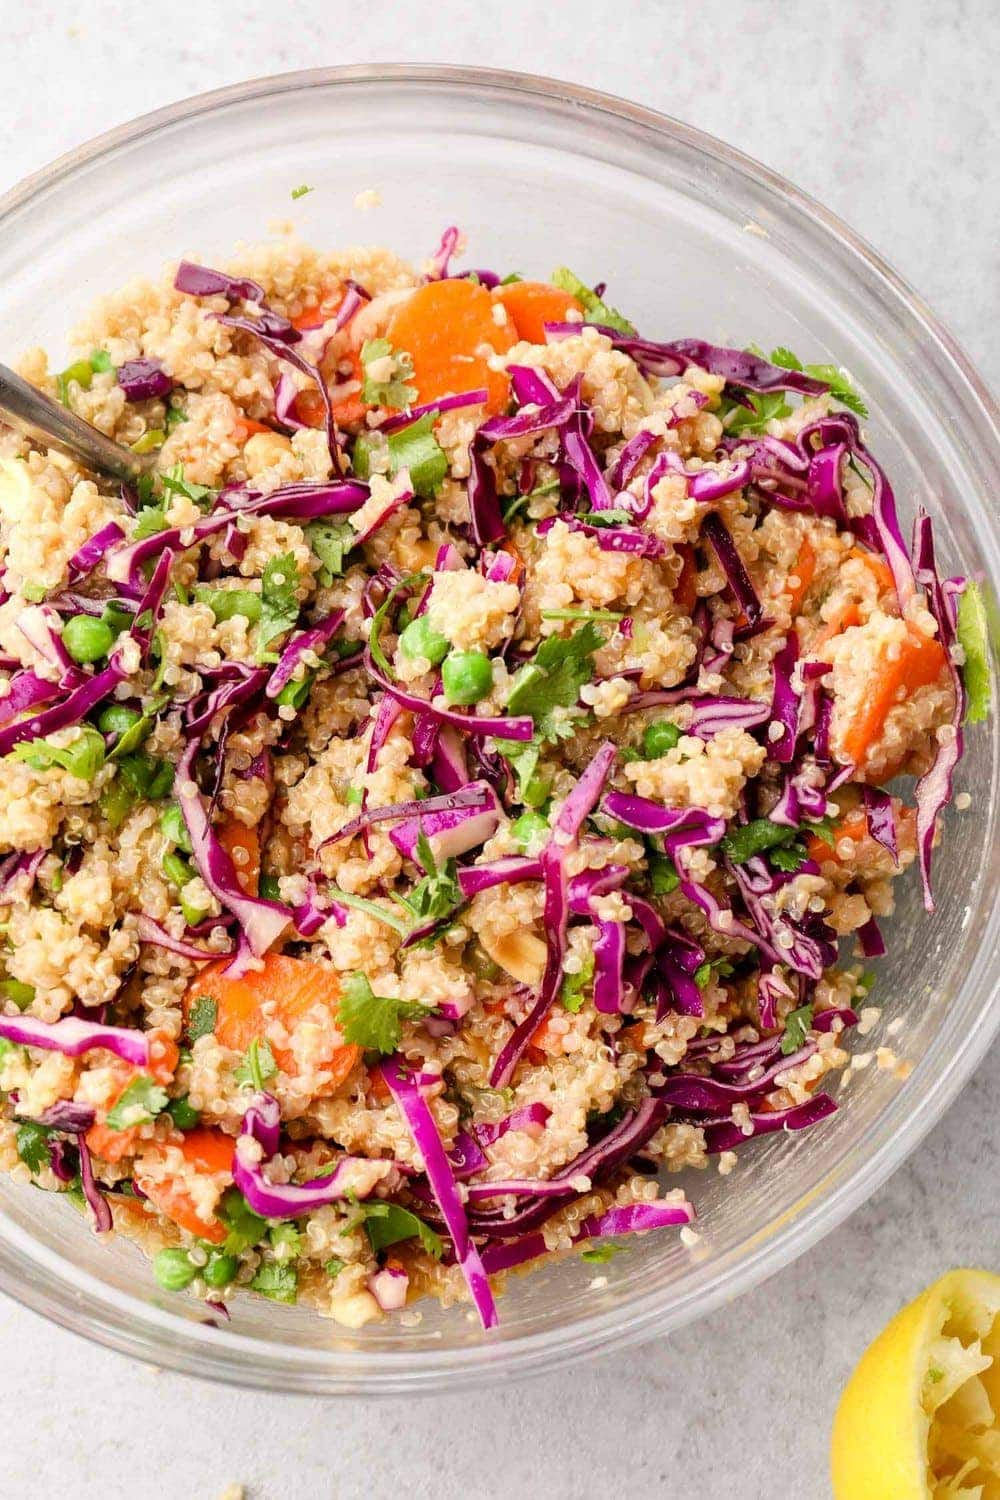 Asian Quinoa Salad tossed with the ginger dressing in a mixing bowl.